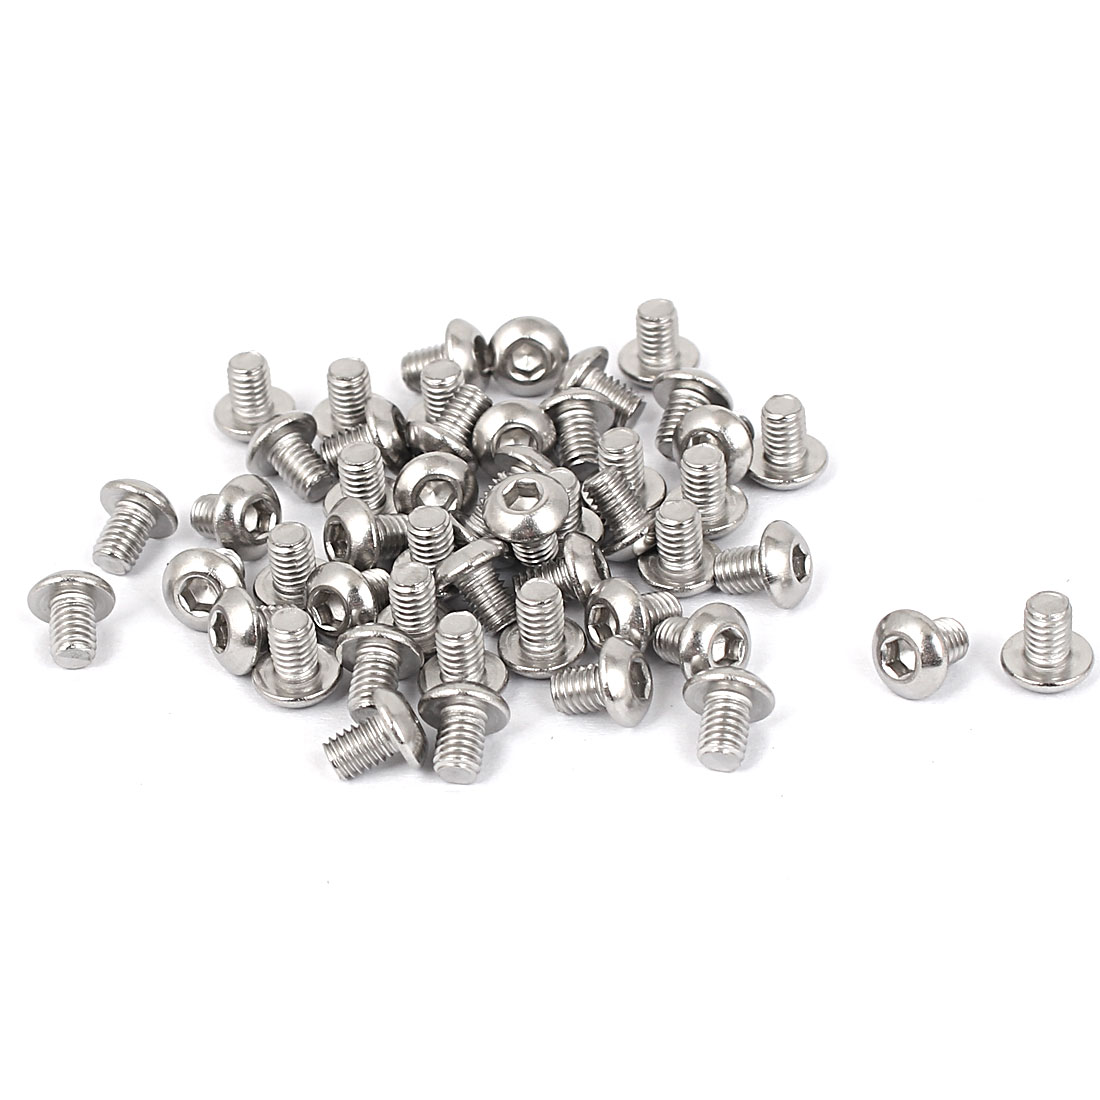 M3 x 4mm Full Thread Stainless Steel Button Head Socket Cap Screw Silver Tone 50 Pcs